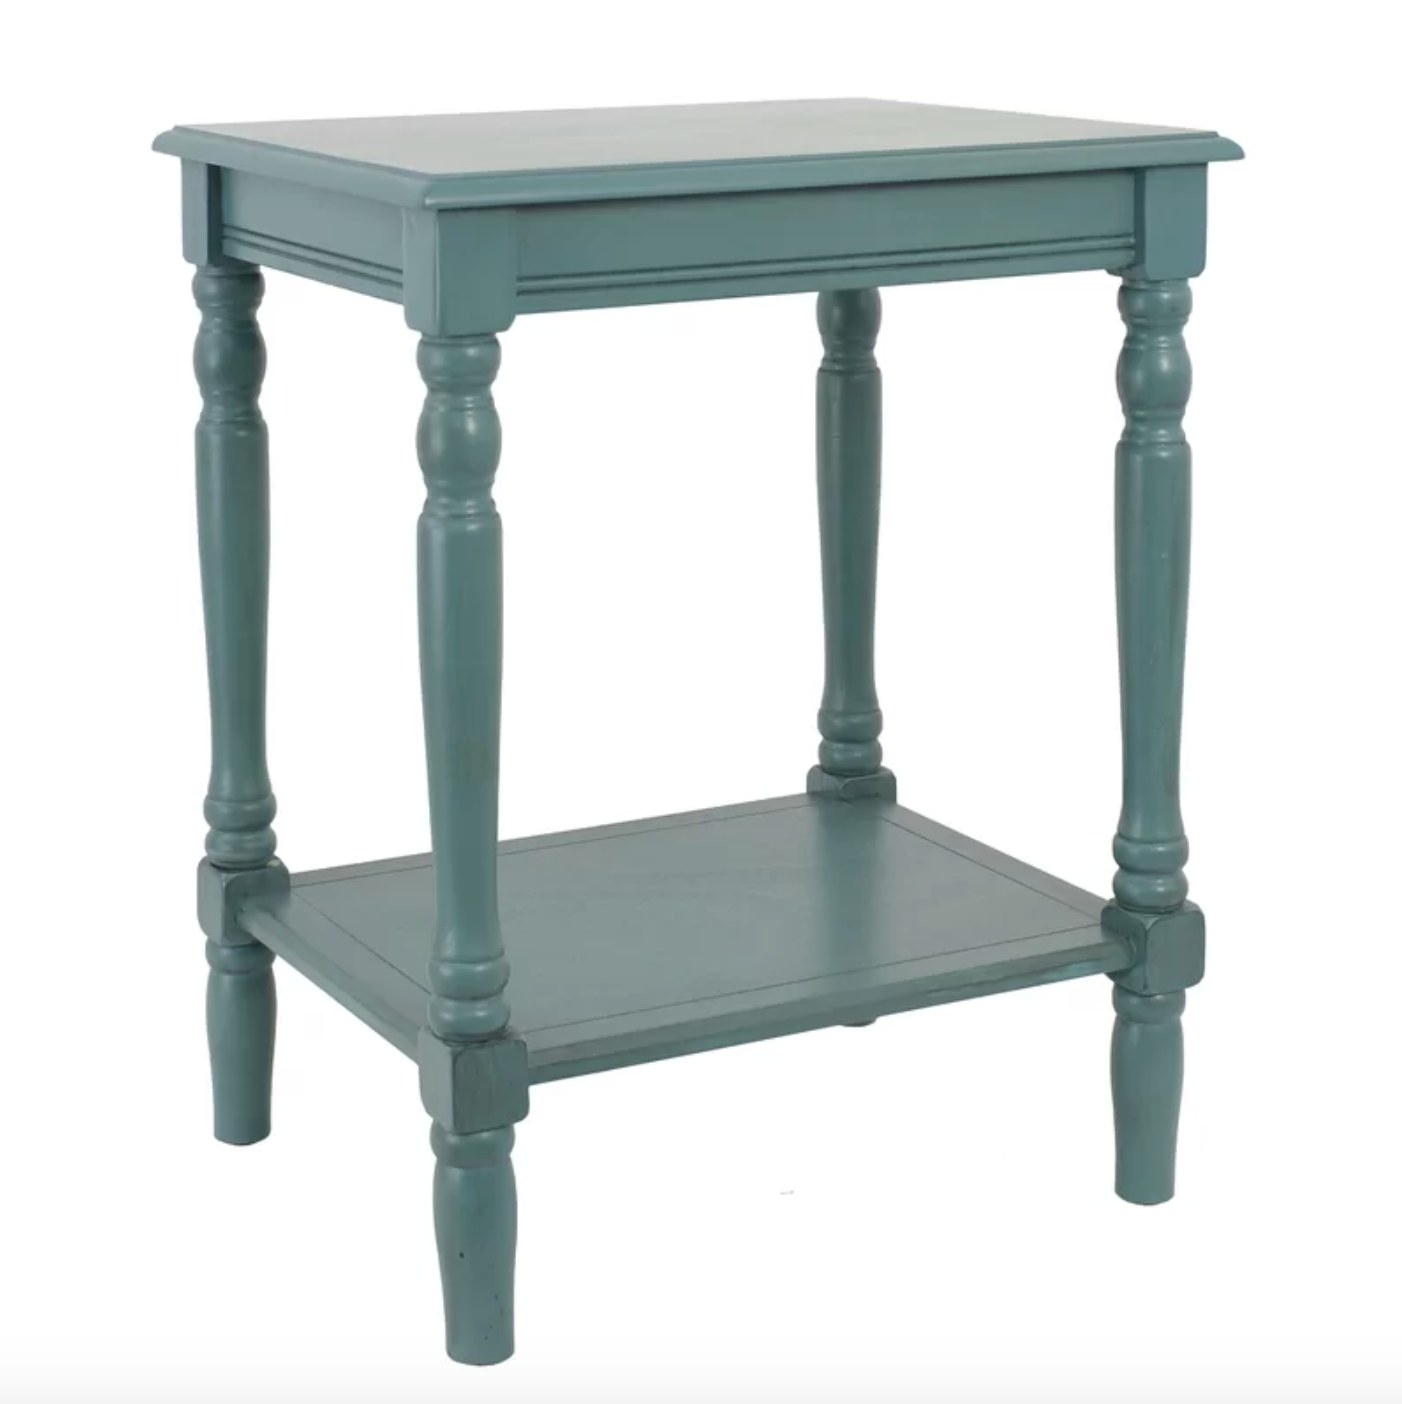 The end table in sea green